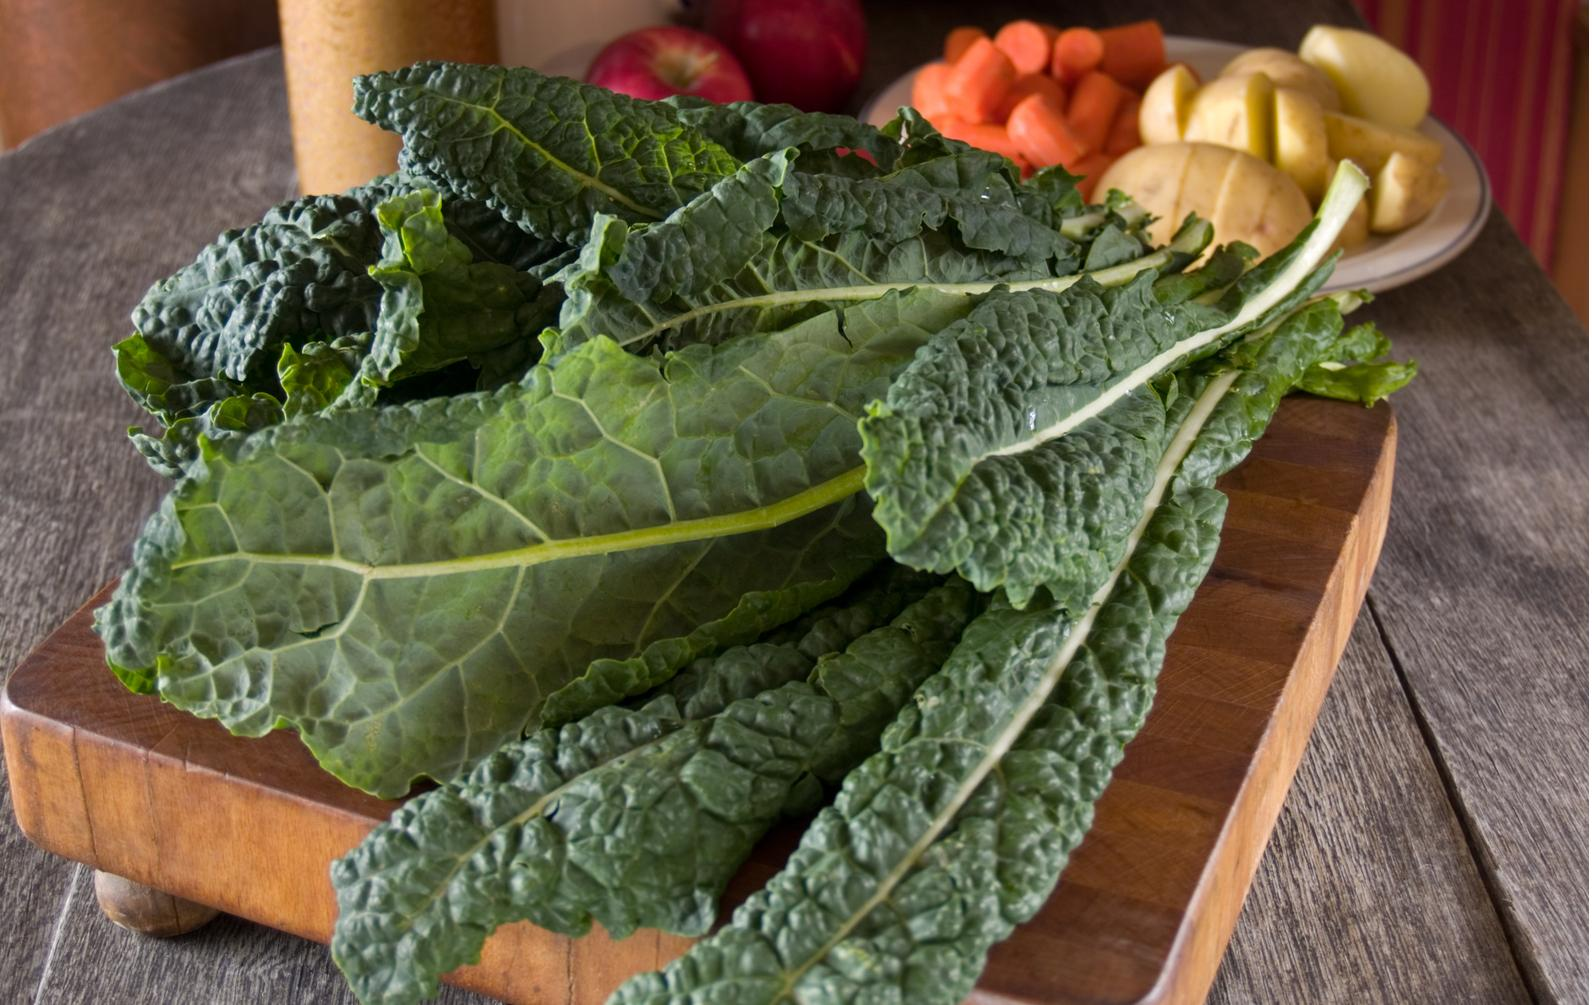 Lacinato kale on a wooden cutting board